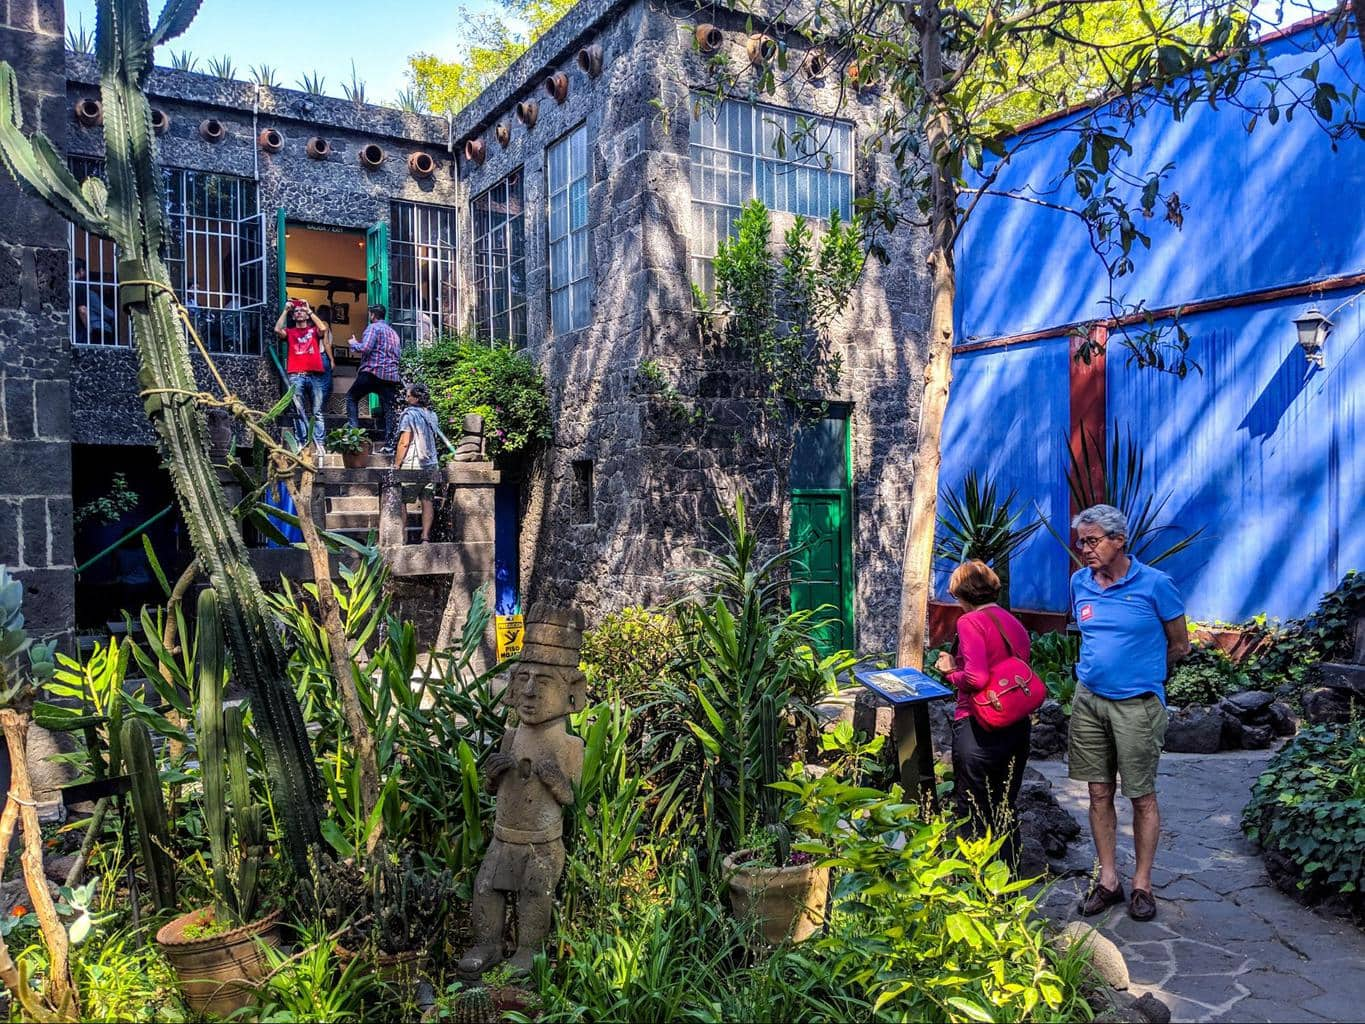 The gardens of La Casa Azul